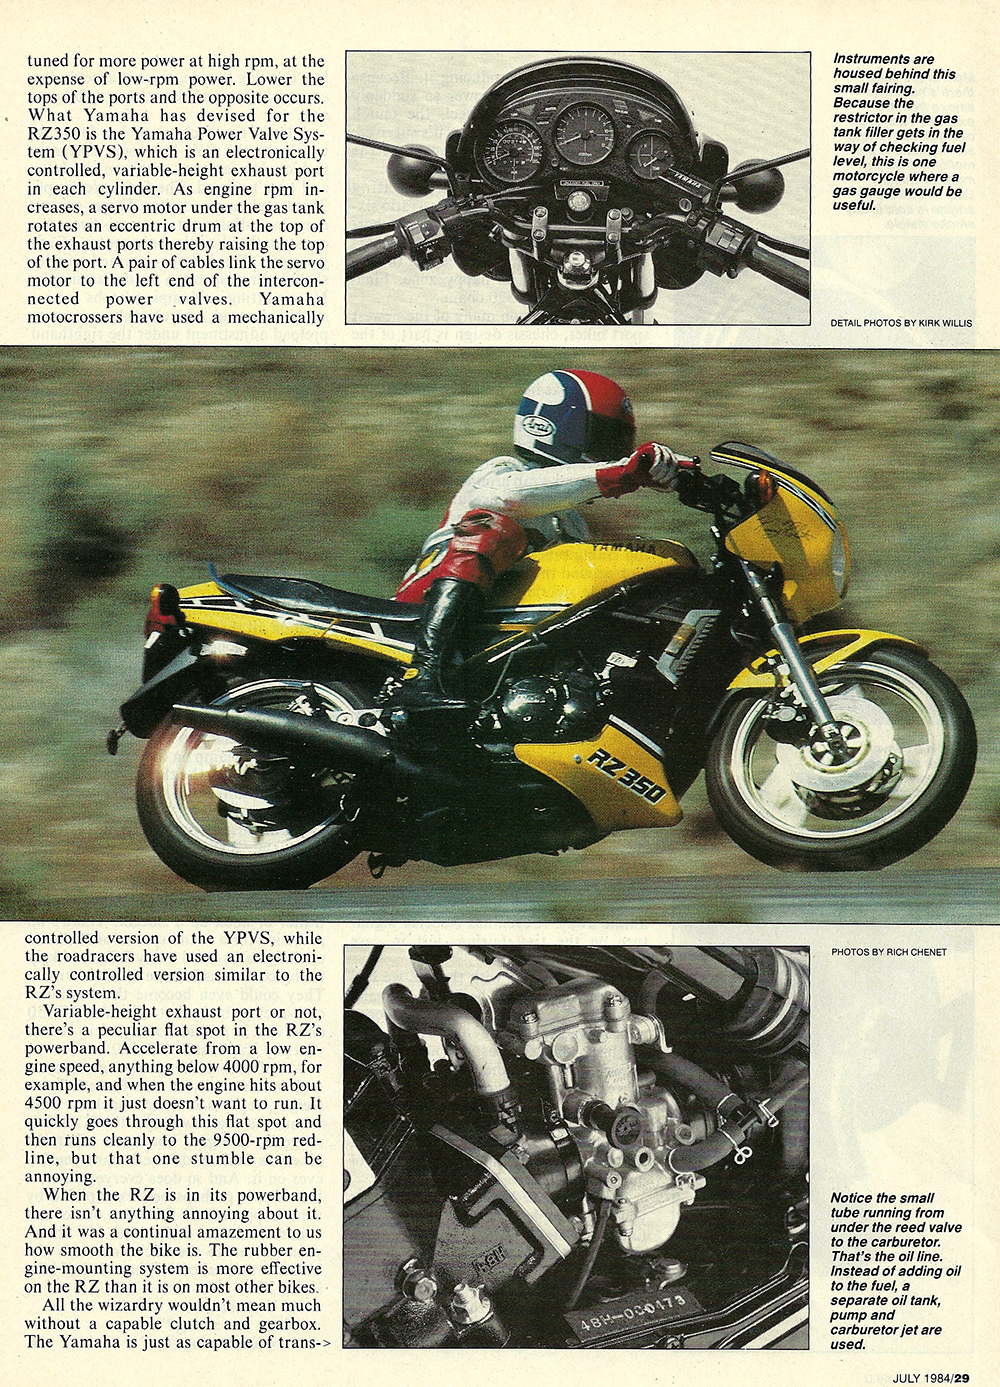 1984 Yamaha RZ350 road test 04.jpg